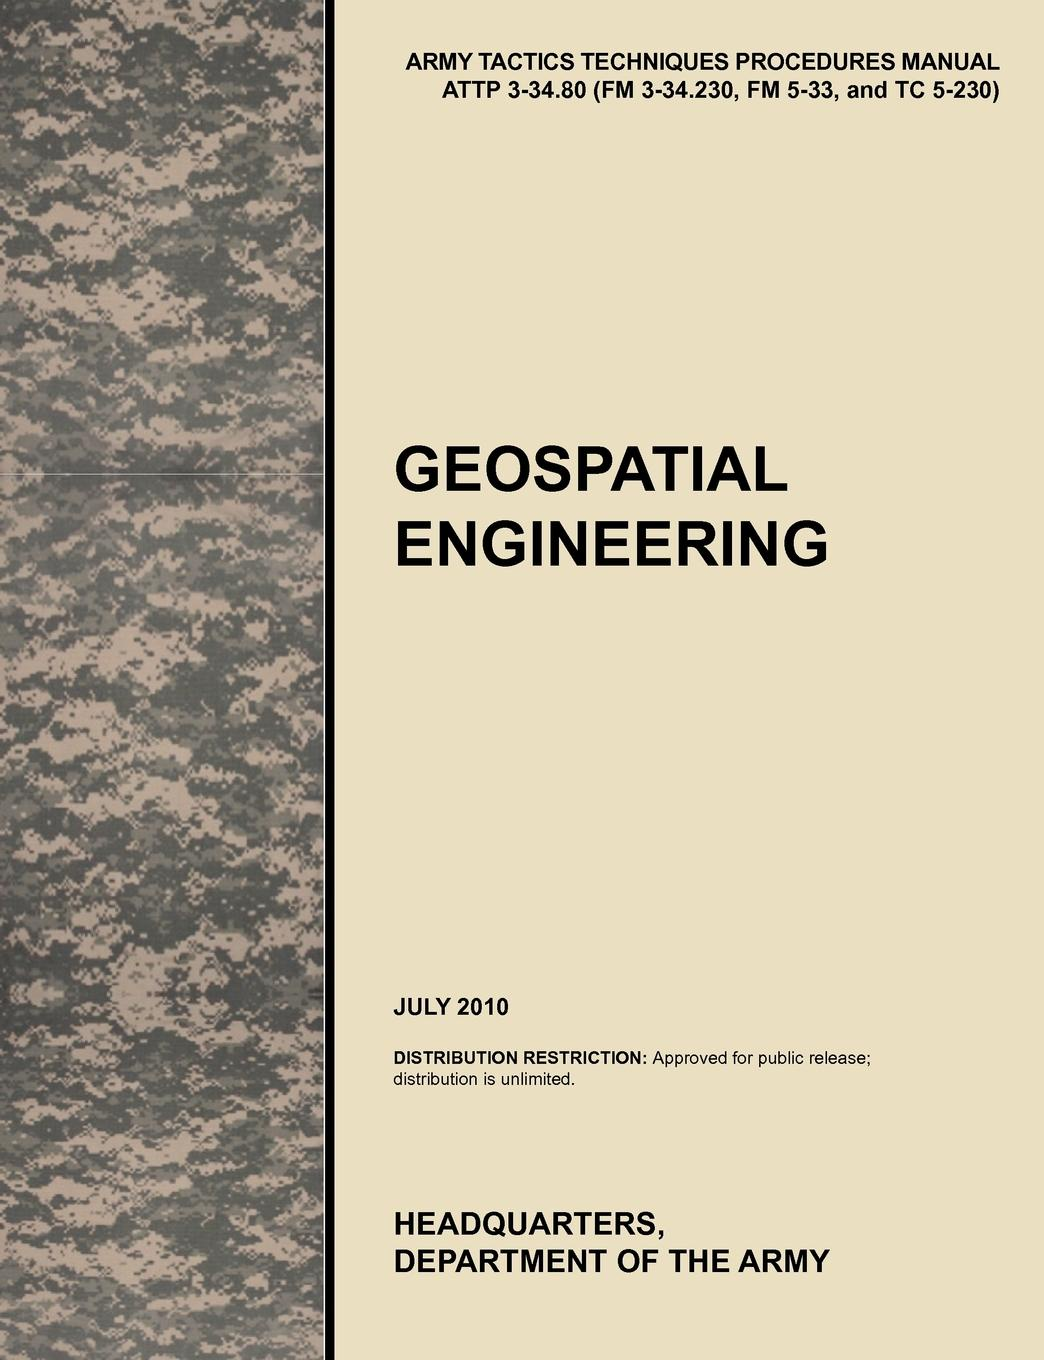 U. S. Army Training and Doctrine Command, U. S. Department of the Army Geospatial Engineering. The Official U.S. Army Tactics, Techniques, and Procedures Manual Attp 3-34.80 (FM 3-34.230, FM 5-33, and Tc 5-230), J developing and managing engineering procedures